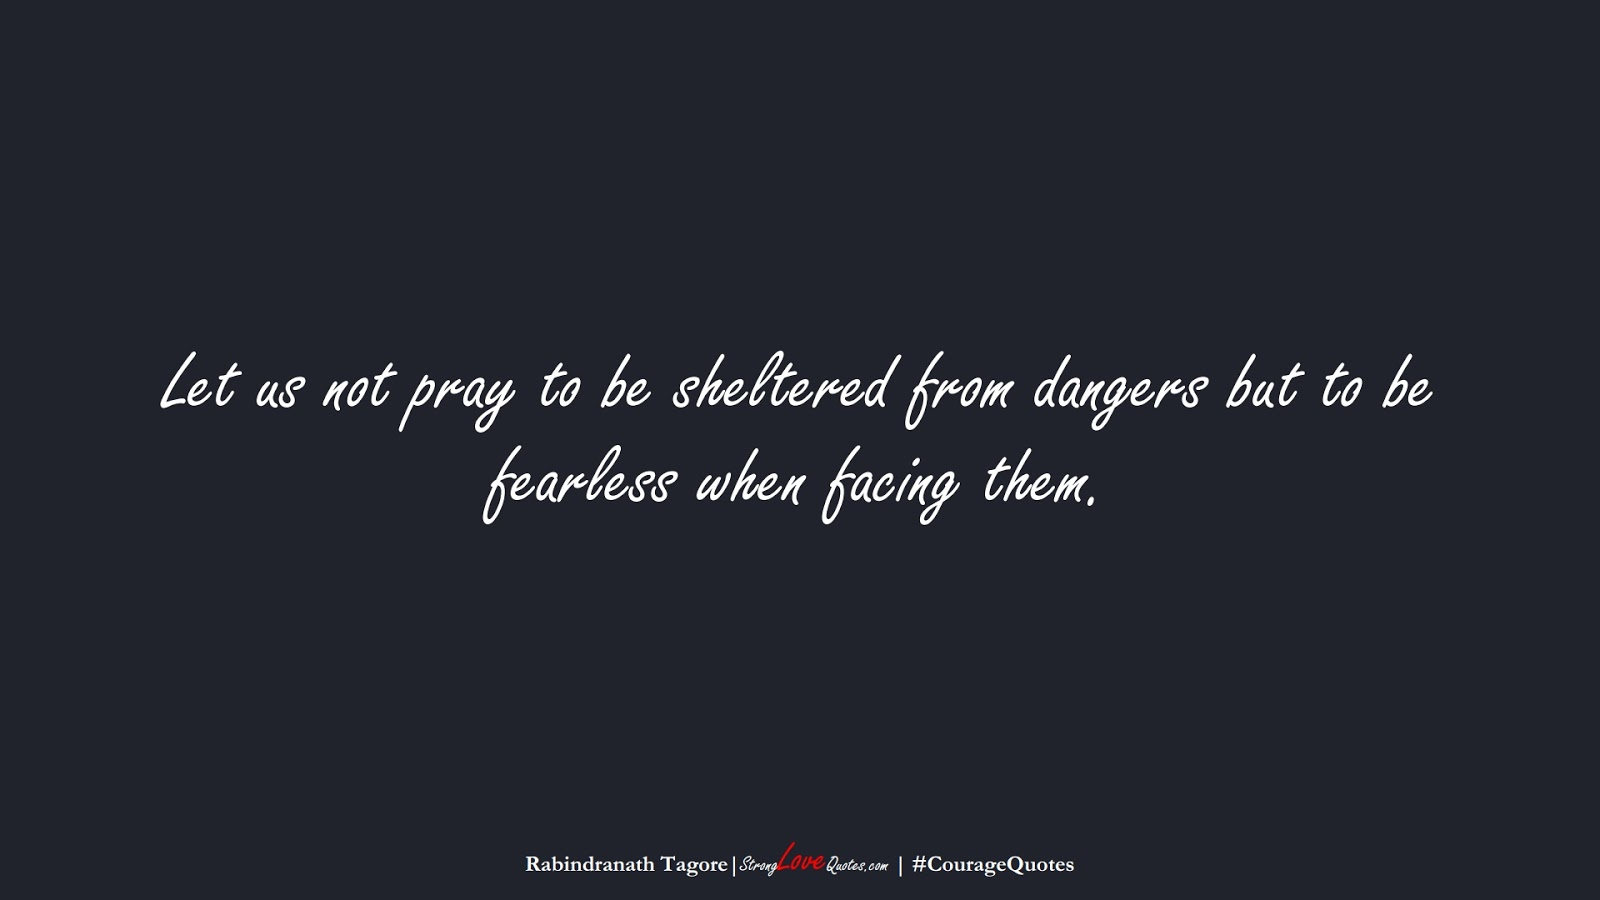 Let us not pray to be sheltered from dangers but to be fearless when facing them. (Rabindranath Tagore);  #CourageQuotes